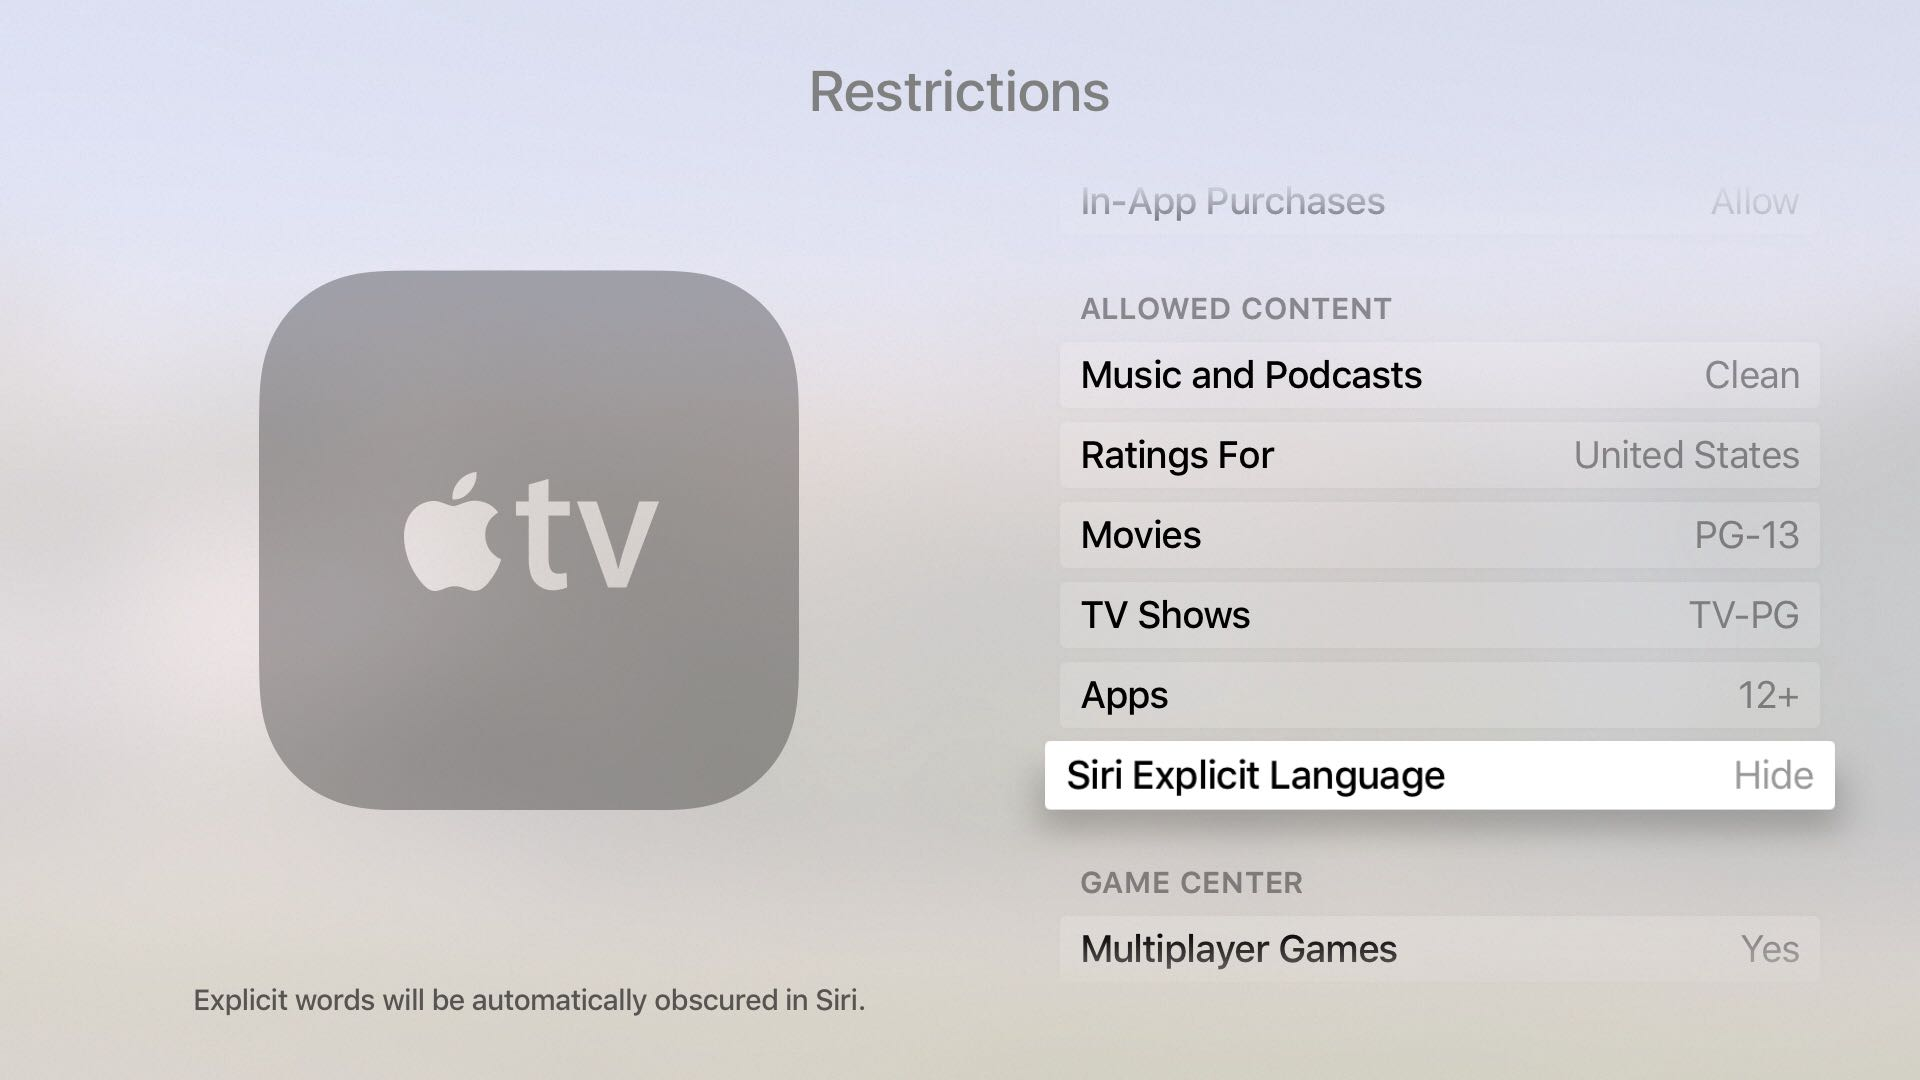 tvOS set explicit language